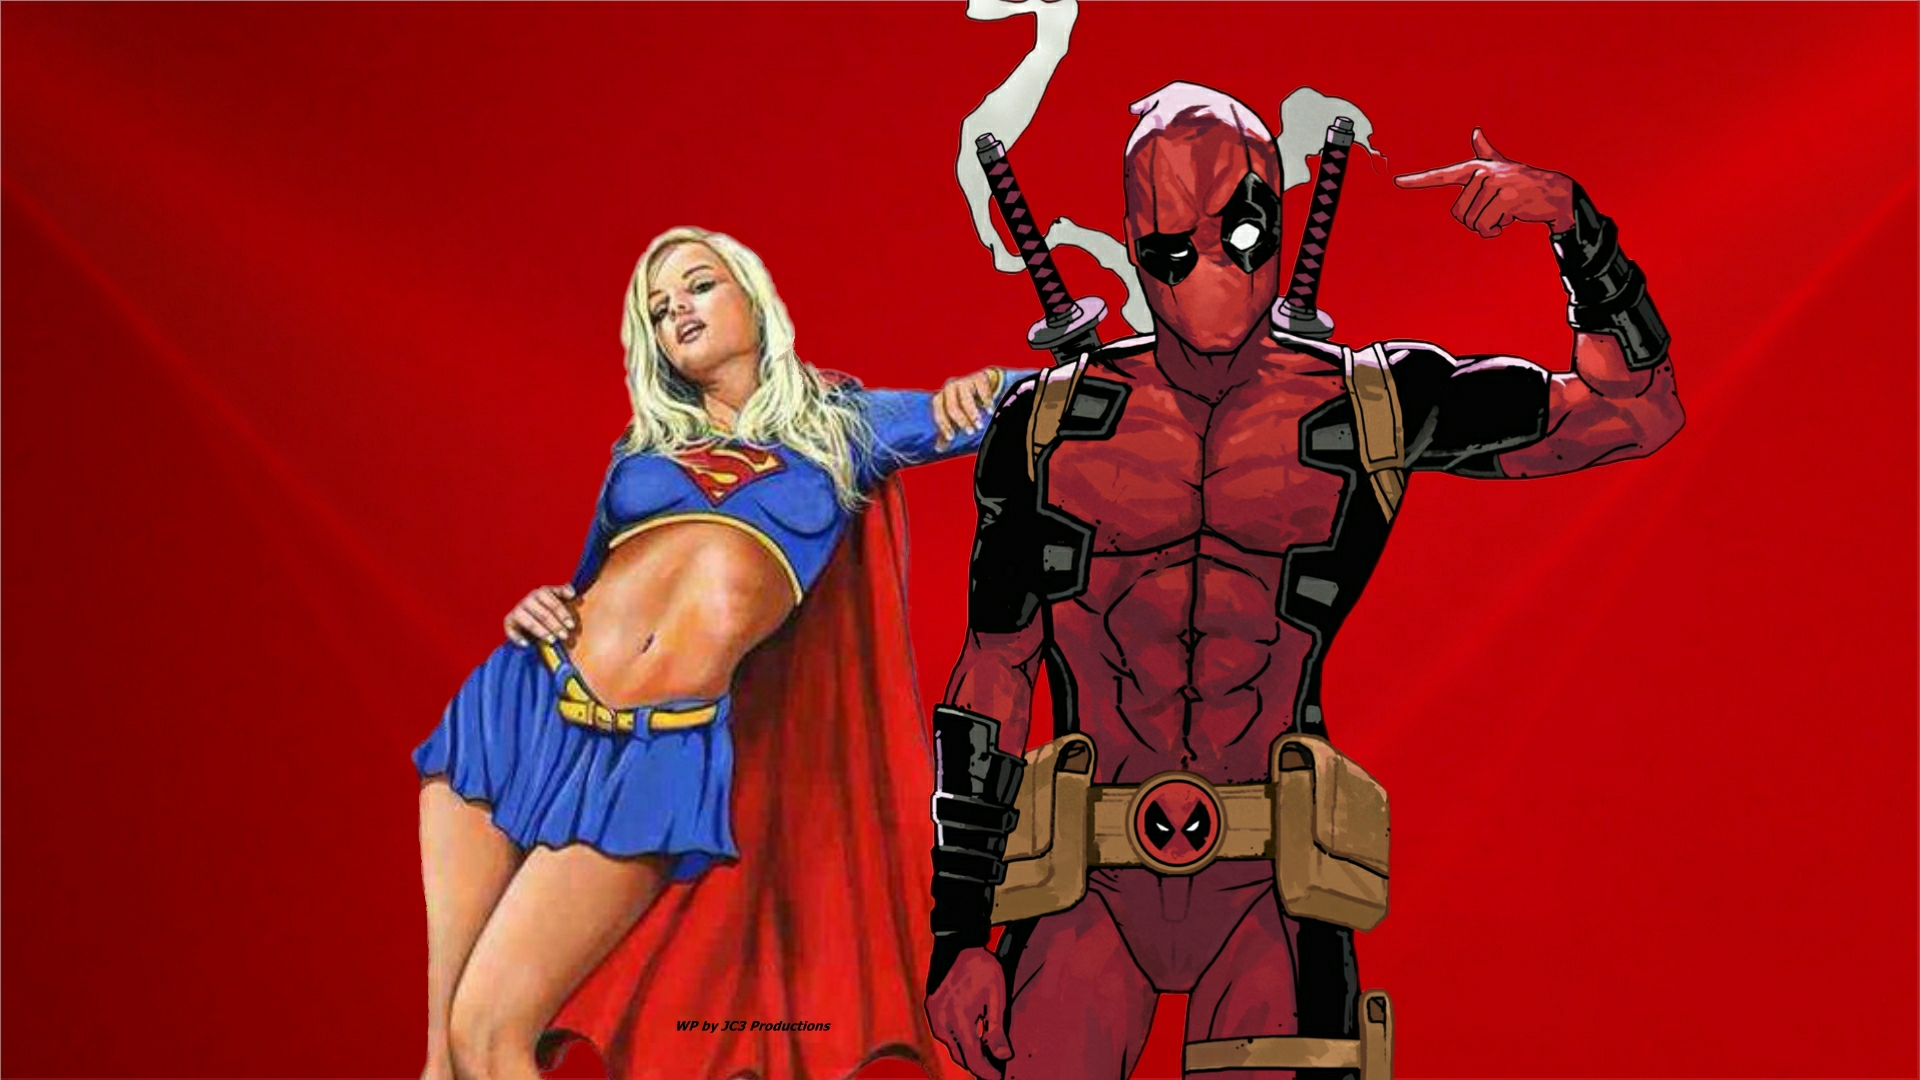 Deadpool Wallpaper   Supergirl Dilemma